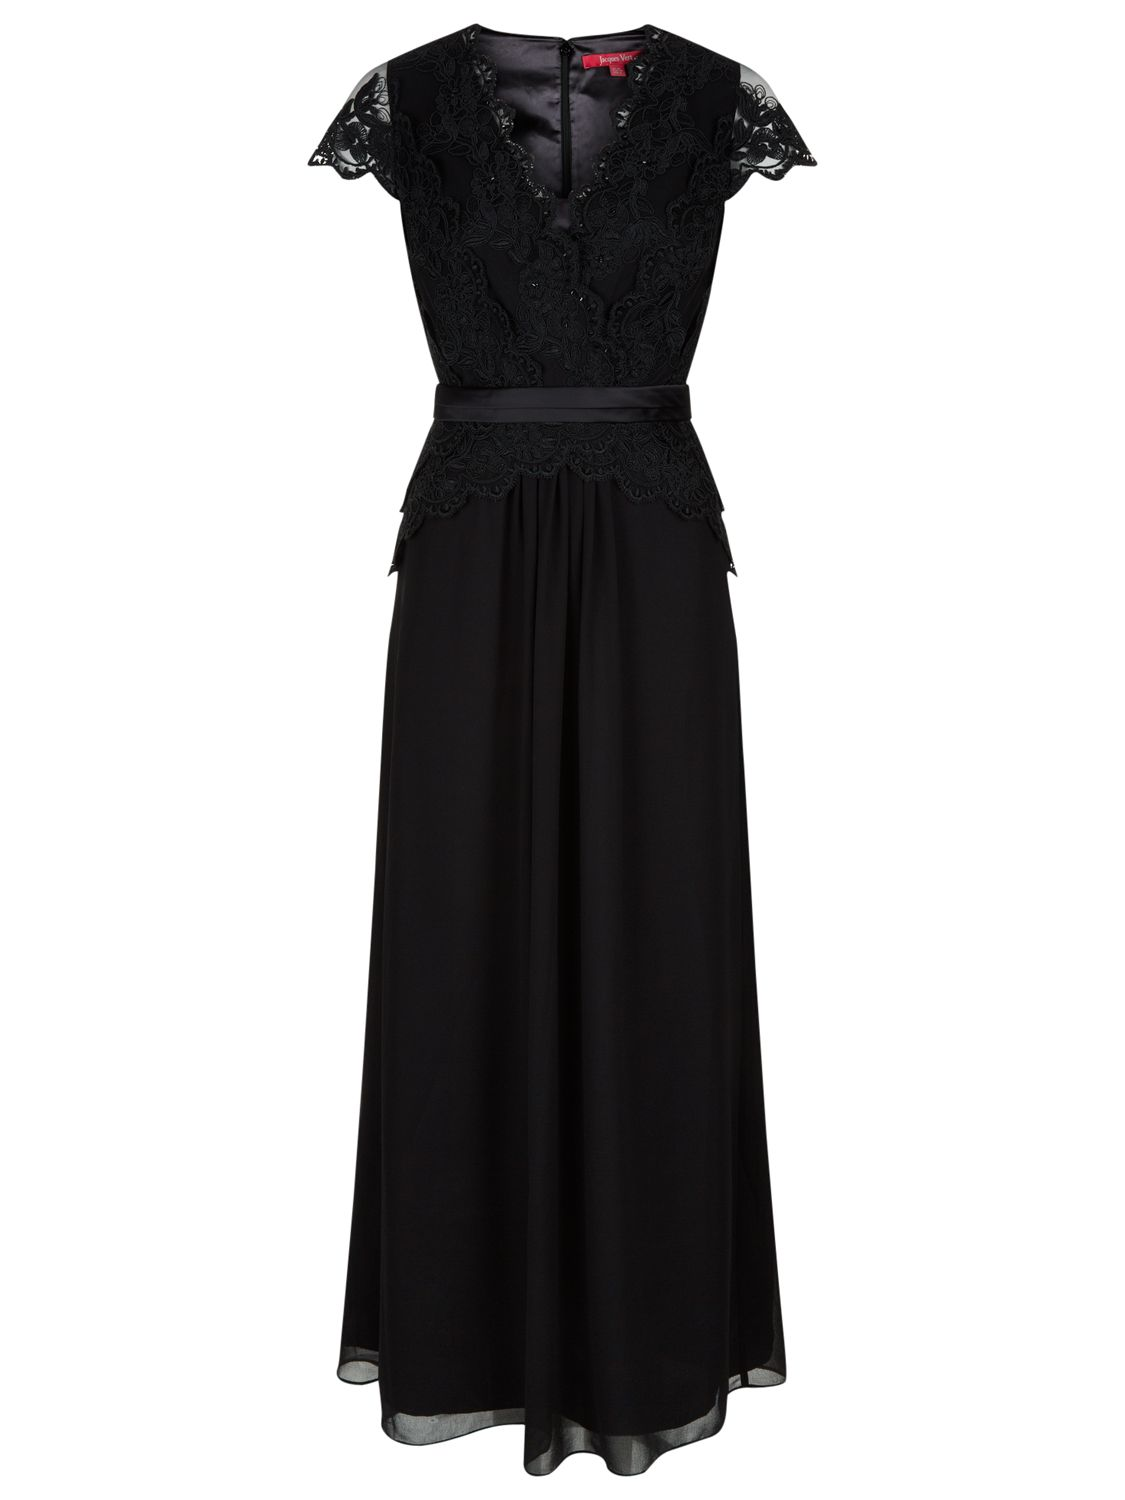 jacques vert chiffon evening dress black, jacques, vert, chiffon, evening, dress, black, jacques vert, 10|16|14|18|12, clearance, womenswear offers, womens dresses offers, new years party offers, women, plus size, special offers, inactive womenswear, new reductions, womens dresses, party outfits, evening gowns, 1691383